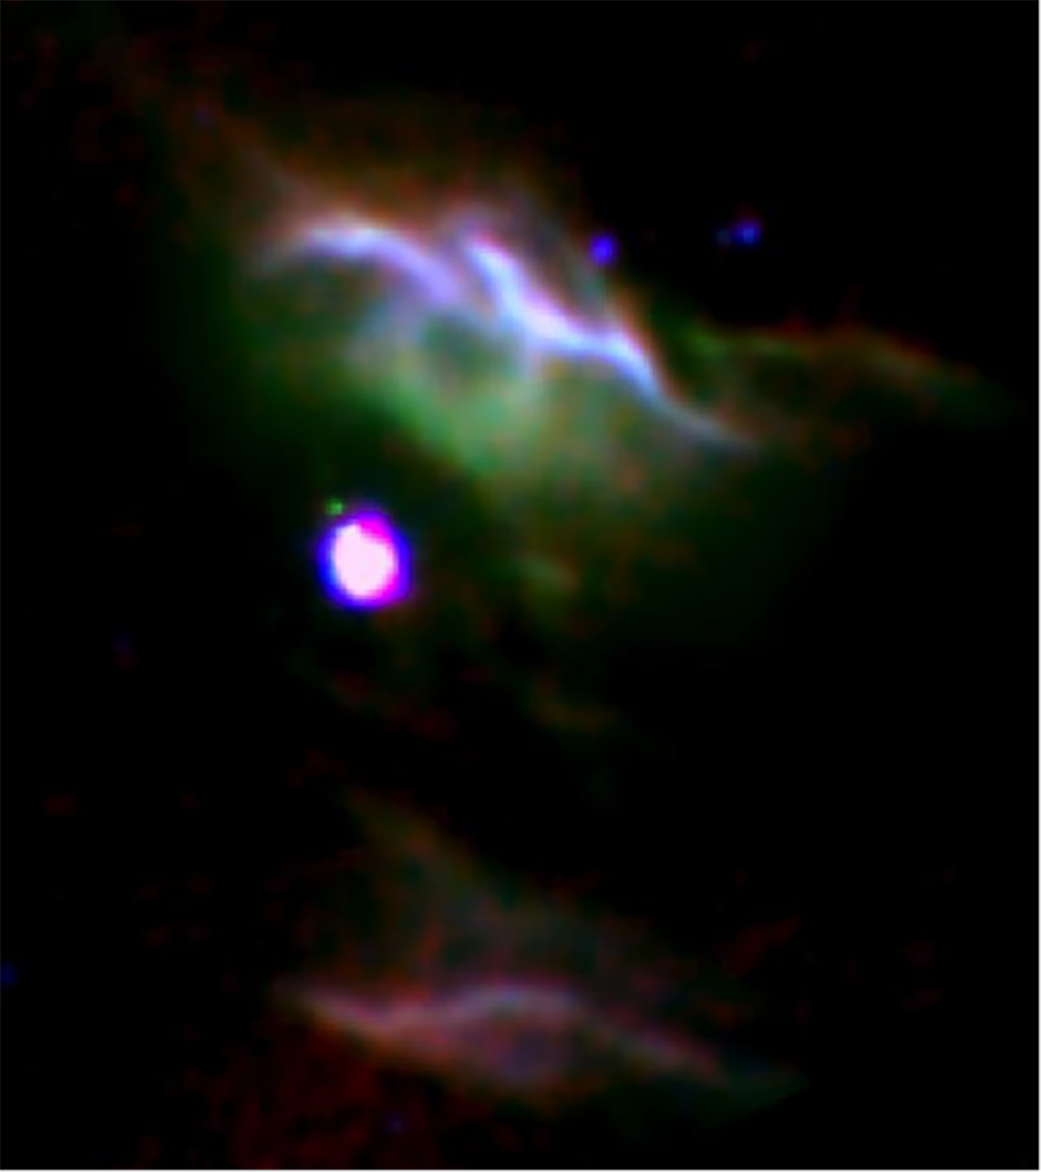 Combination of three color images of NGC 7023 from SOFIA (red & green) and Spitzer (blue) show different populations of PAH molecules. – Image Credits: NASA/DLR/SOFIA/B. Croiset, Leiden Observatory, and O. Berné, CNRS; NASA/JPL-Caltech/Spitzer.